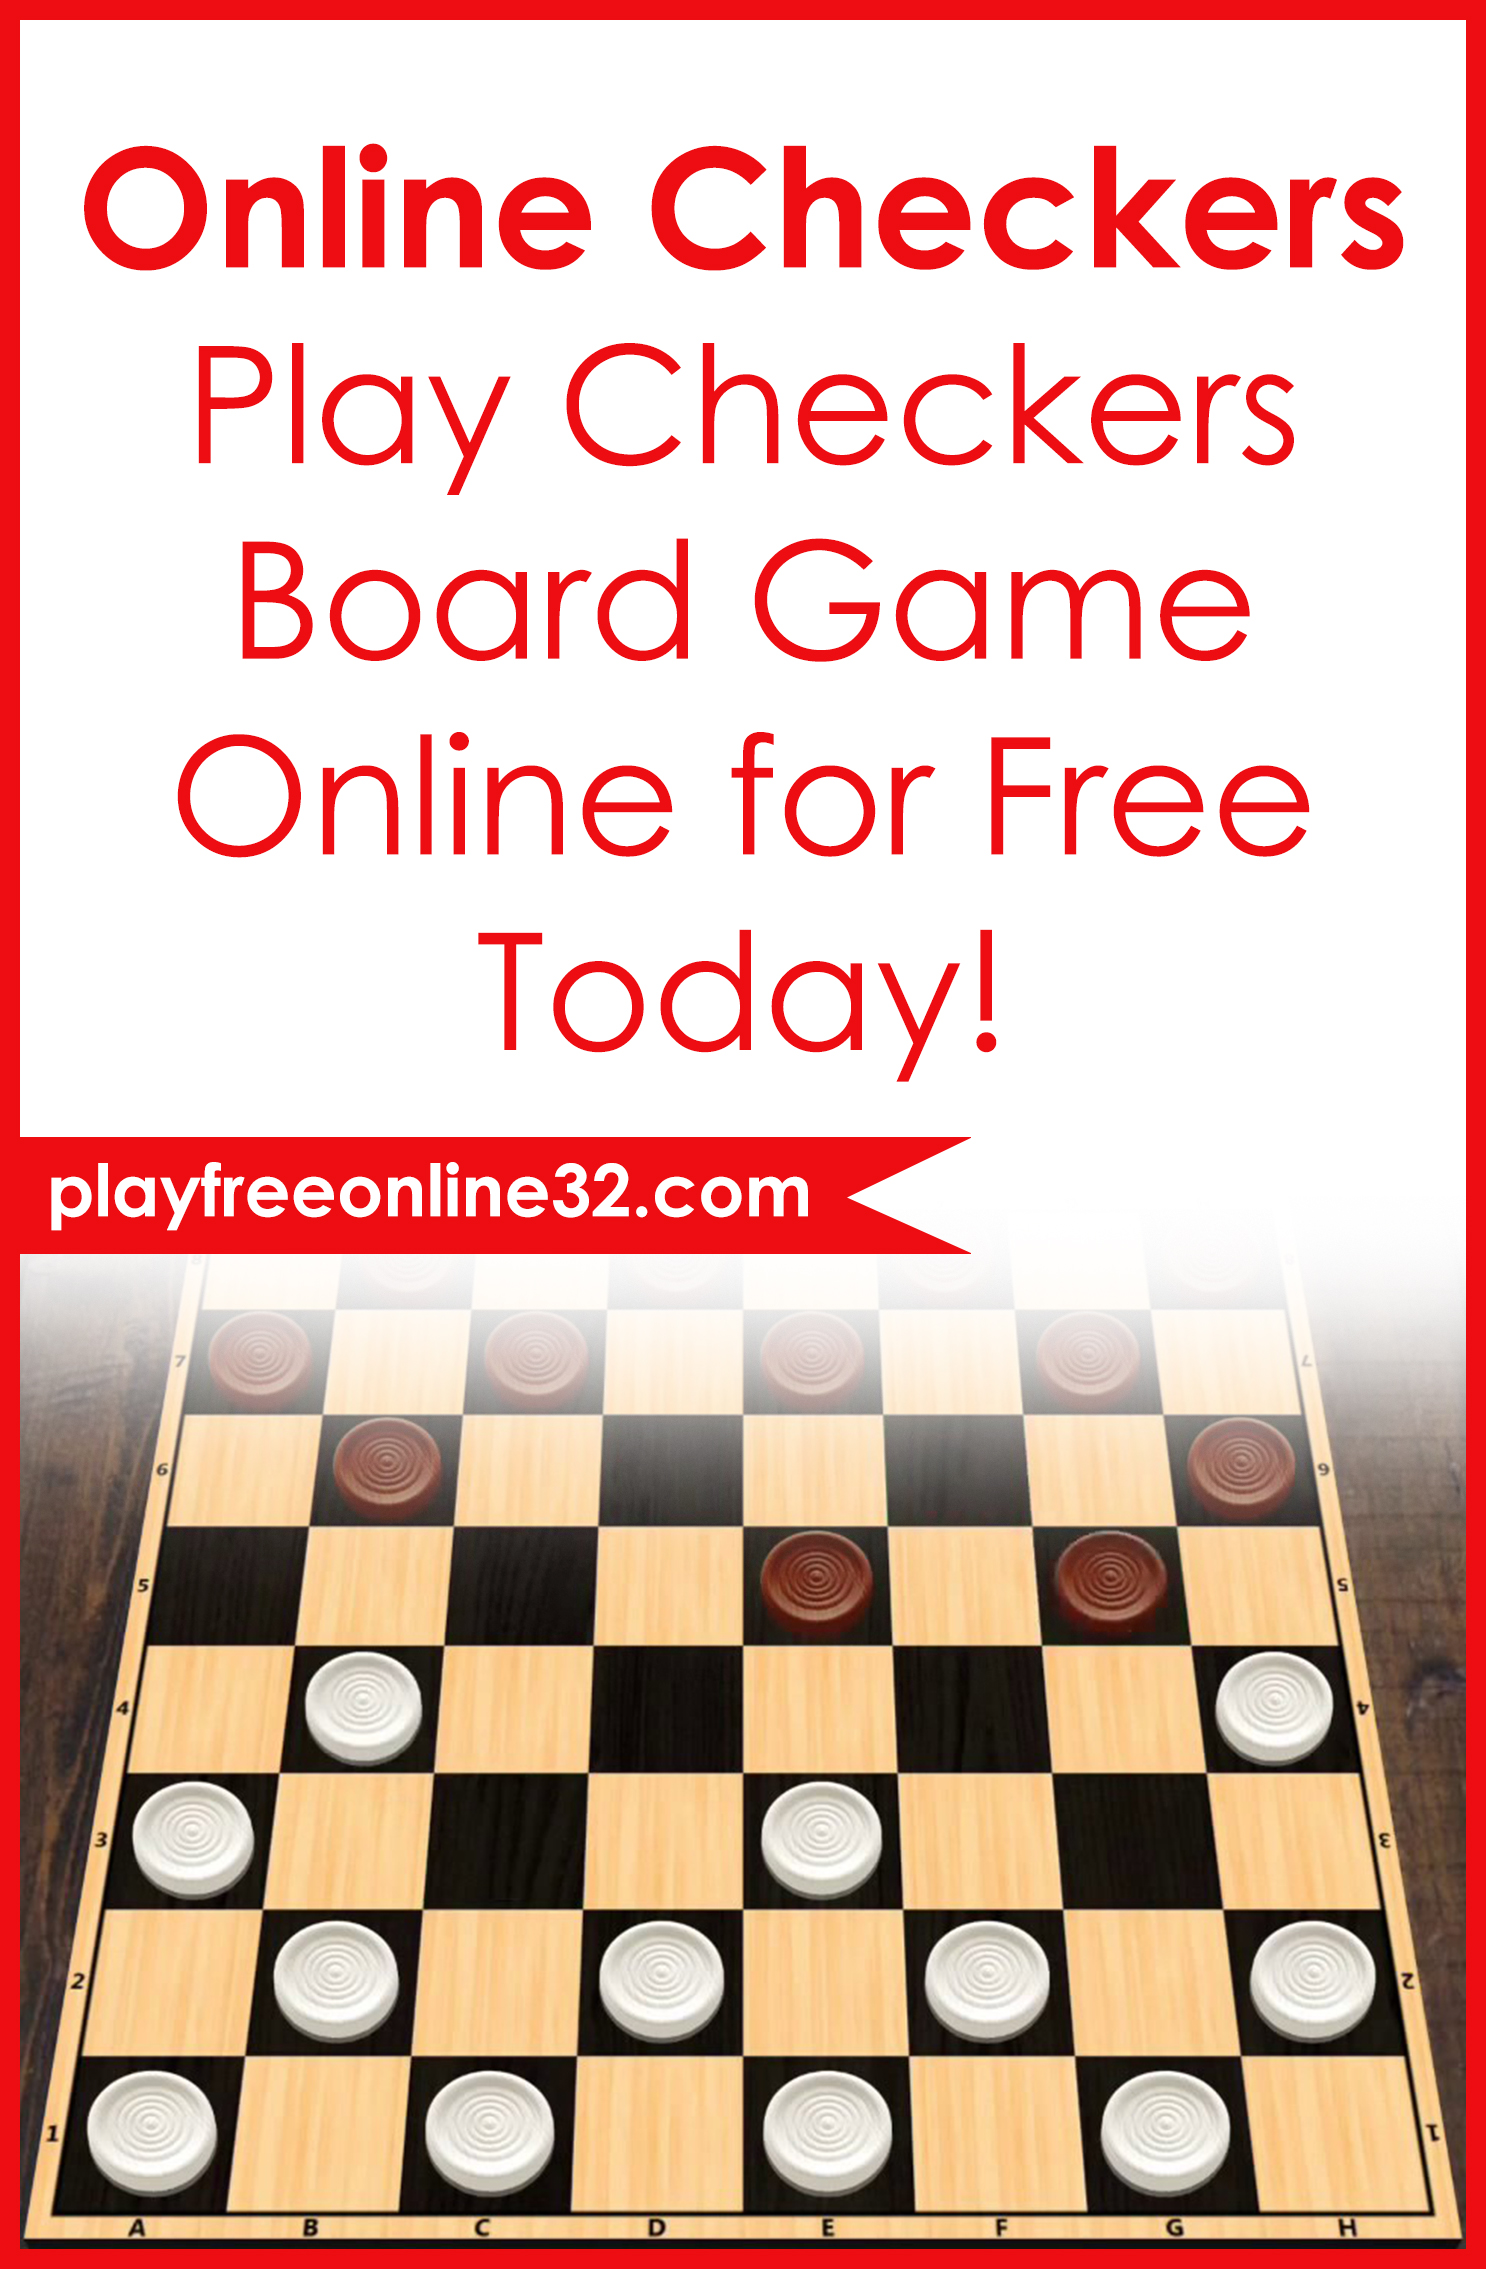 Online Checkers • Play Checkers Board Game Online for Free Today!